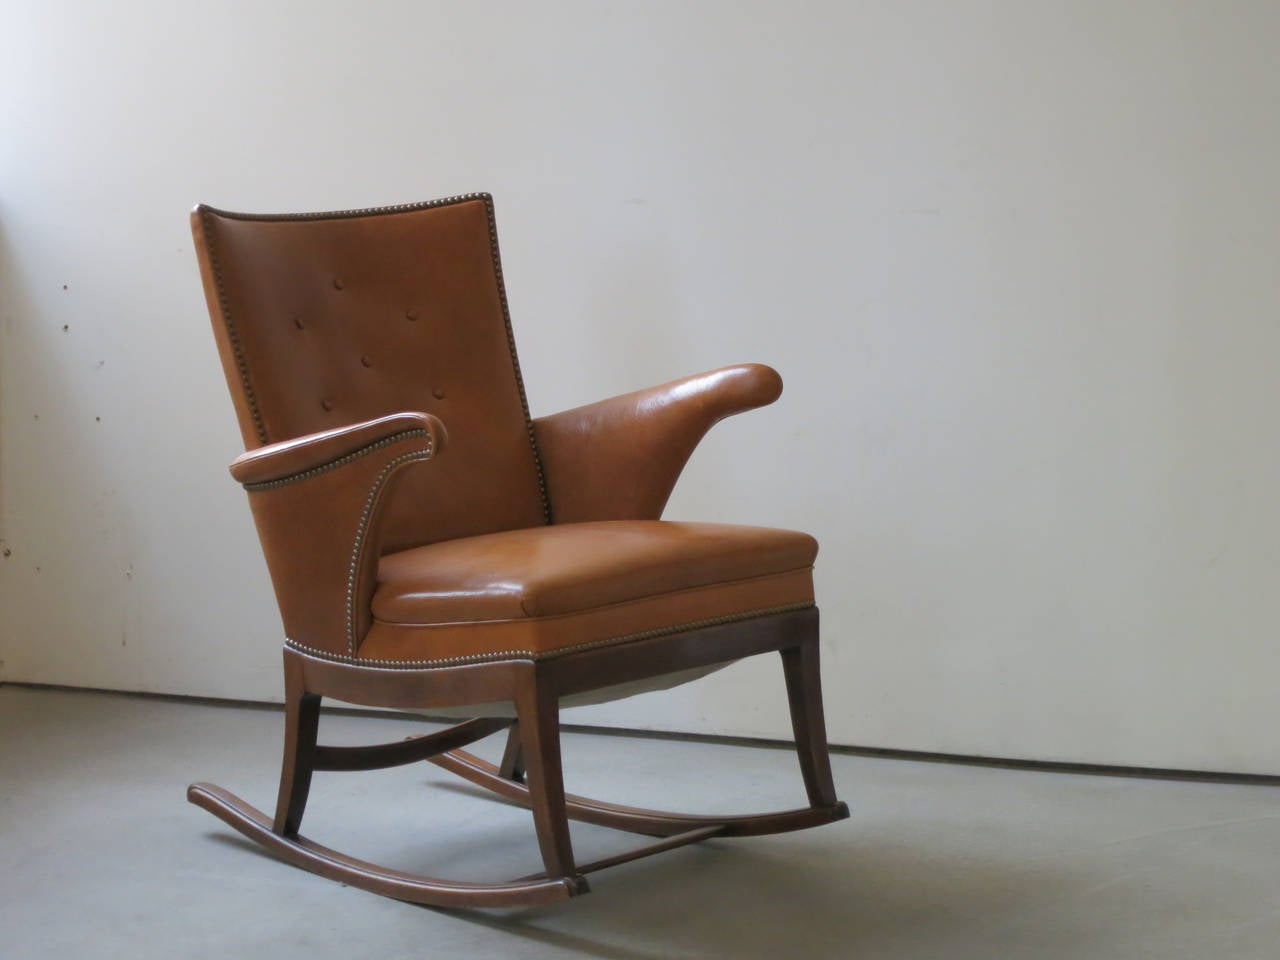 1930s Rocking Chair by Frits Henningsen 3